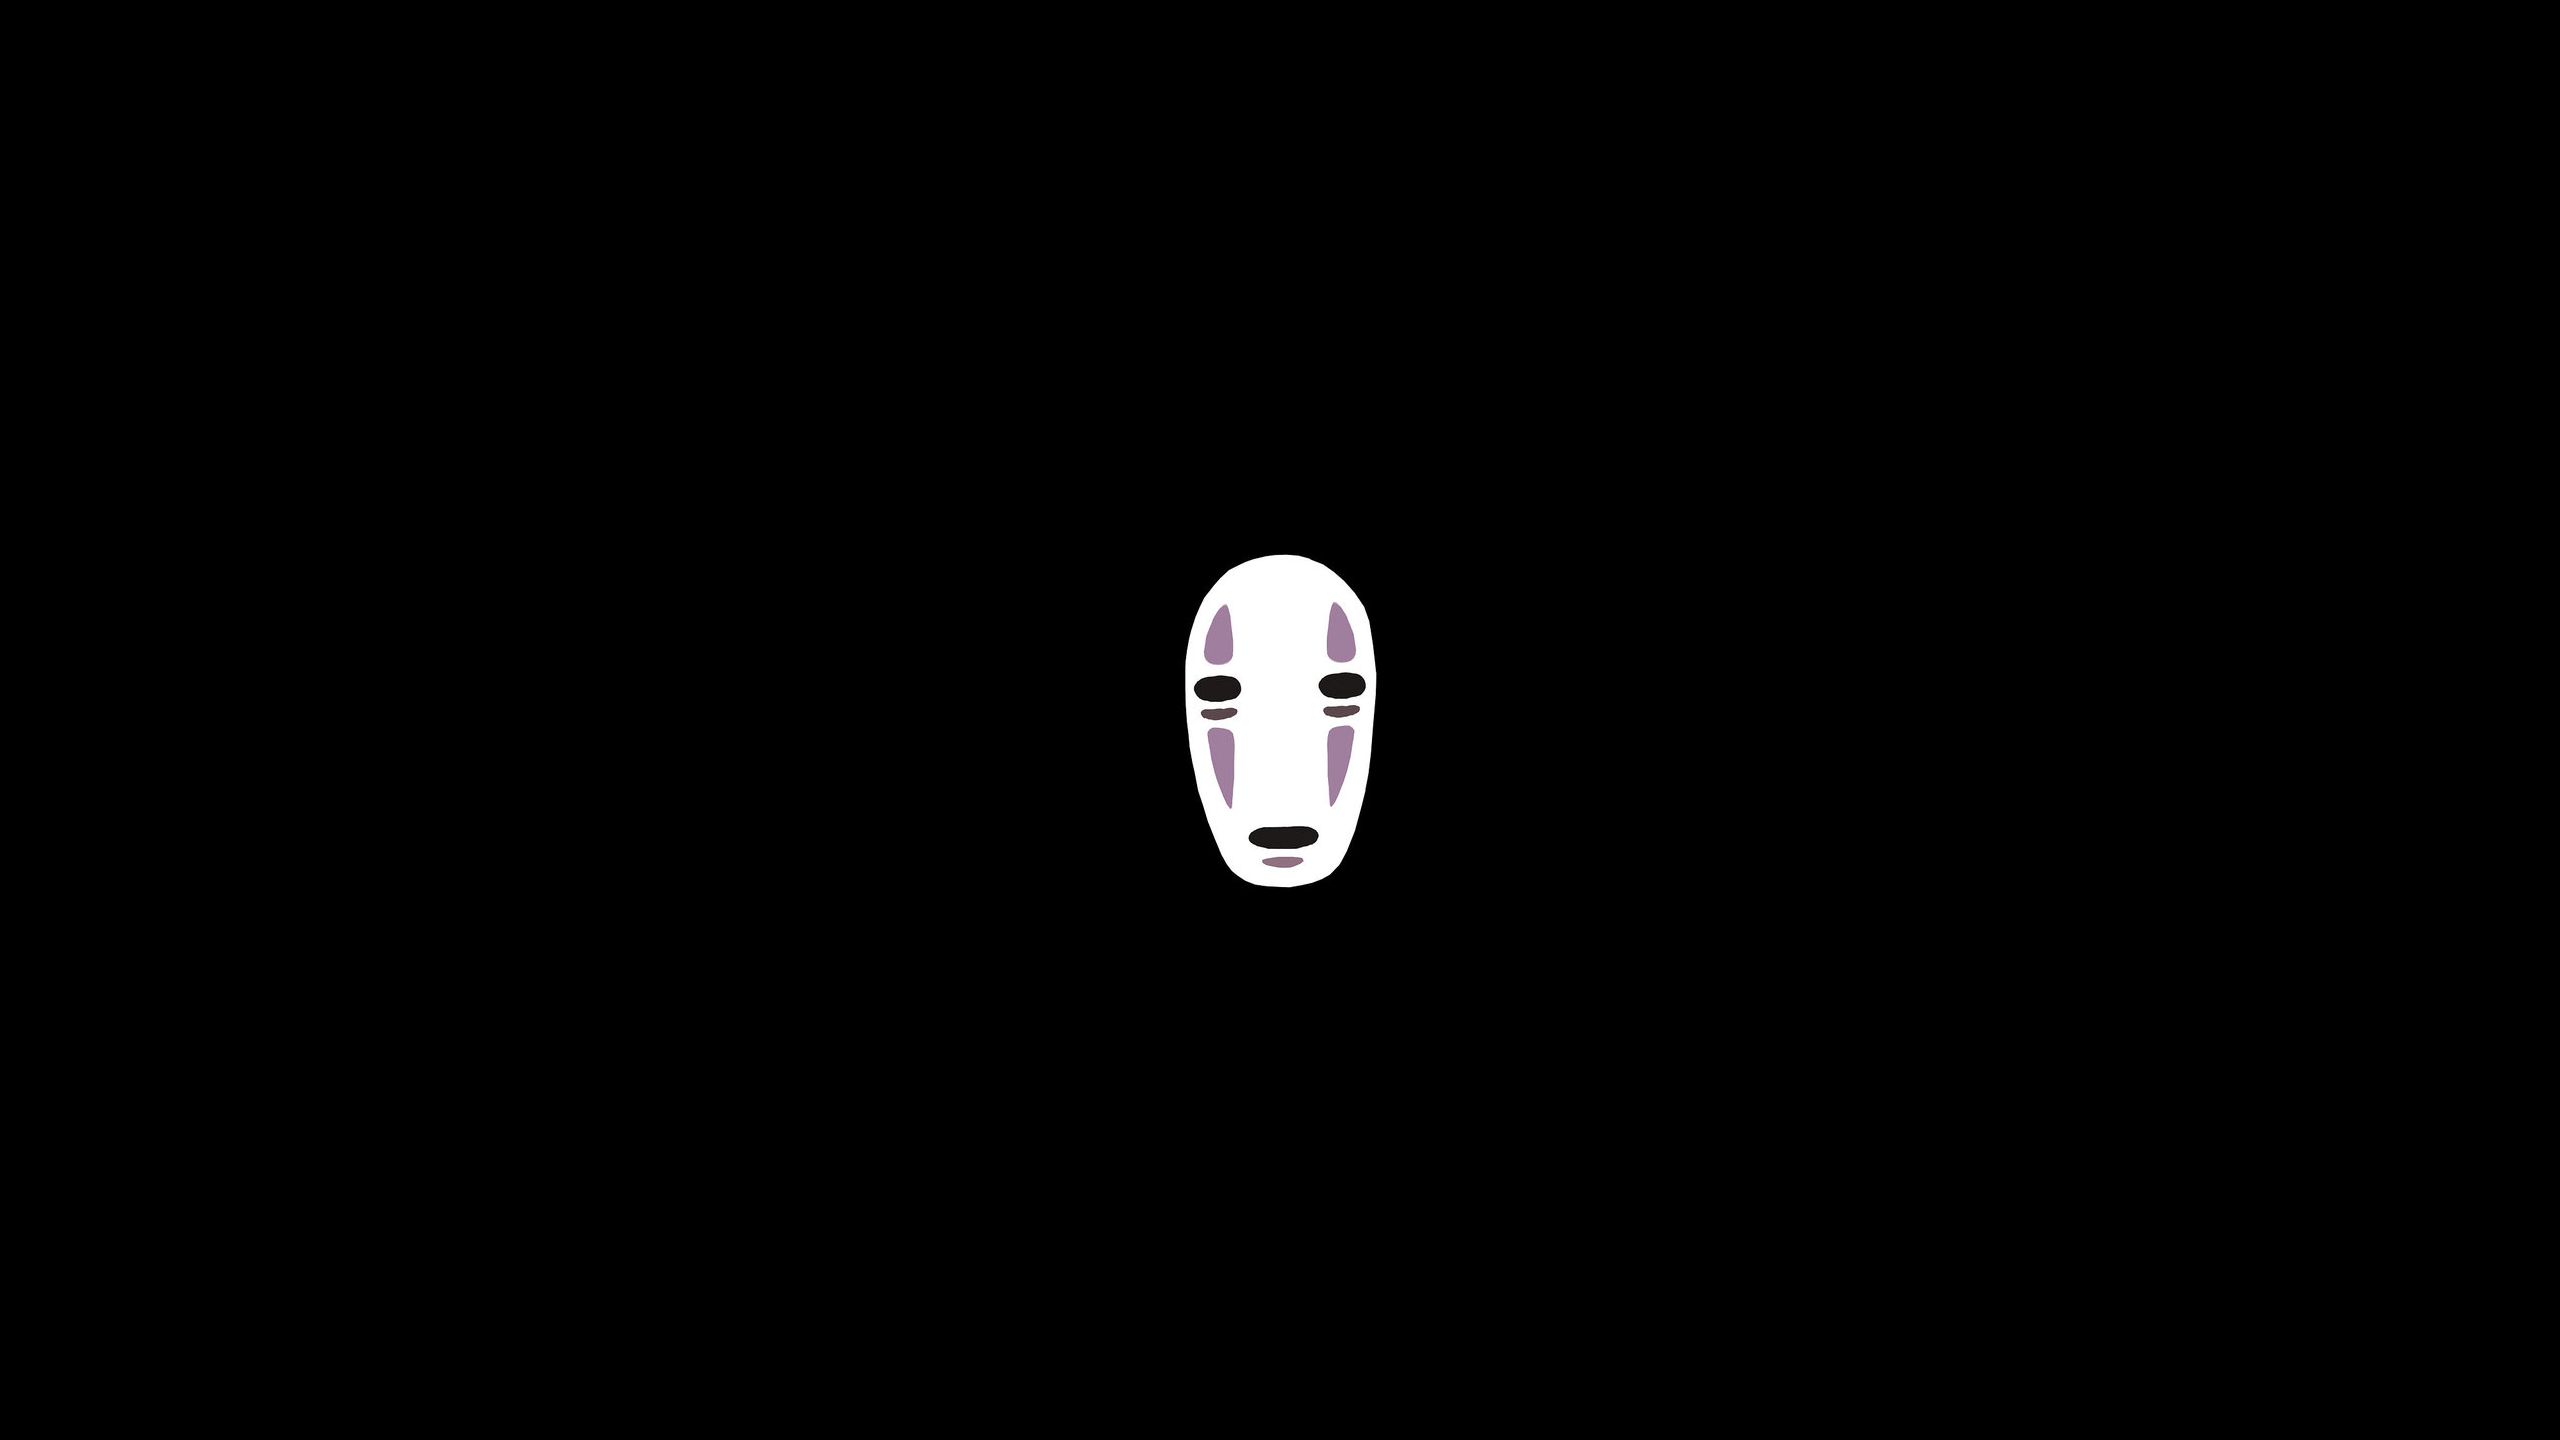 2560x1440 No Face from Studio Ghibli : Amoledbackgrounds